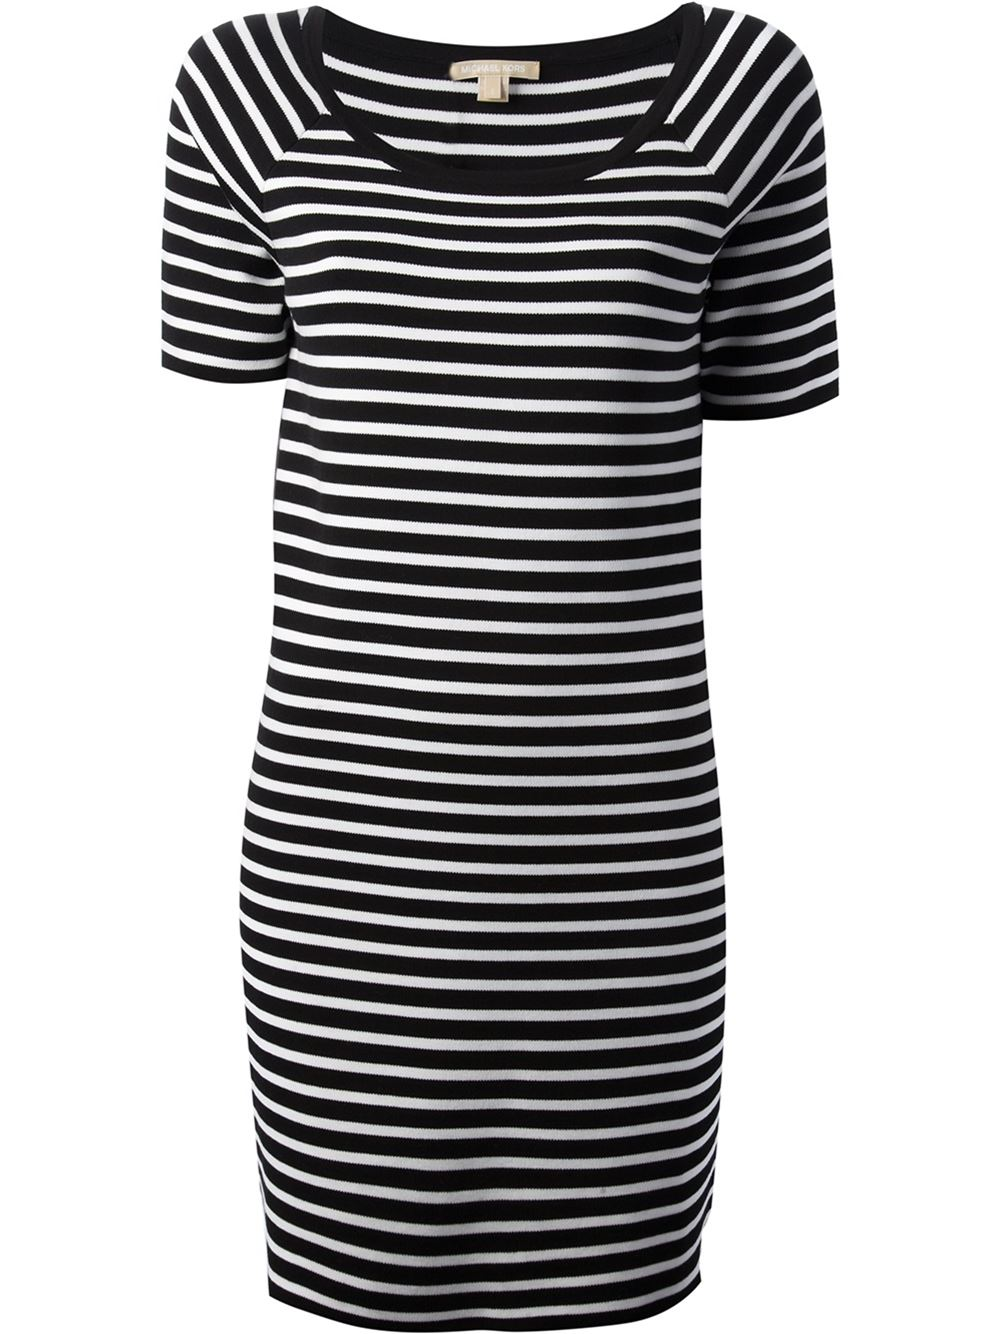 Michael Kors Striped T-shirt Dress - Luisa World - Farfetch.com